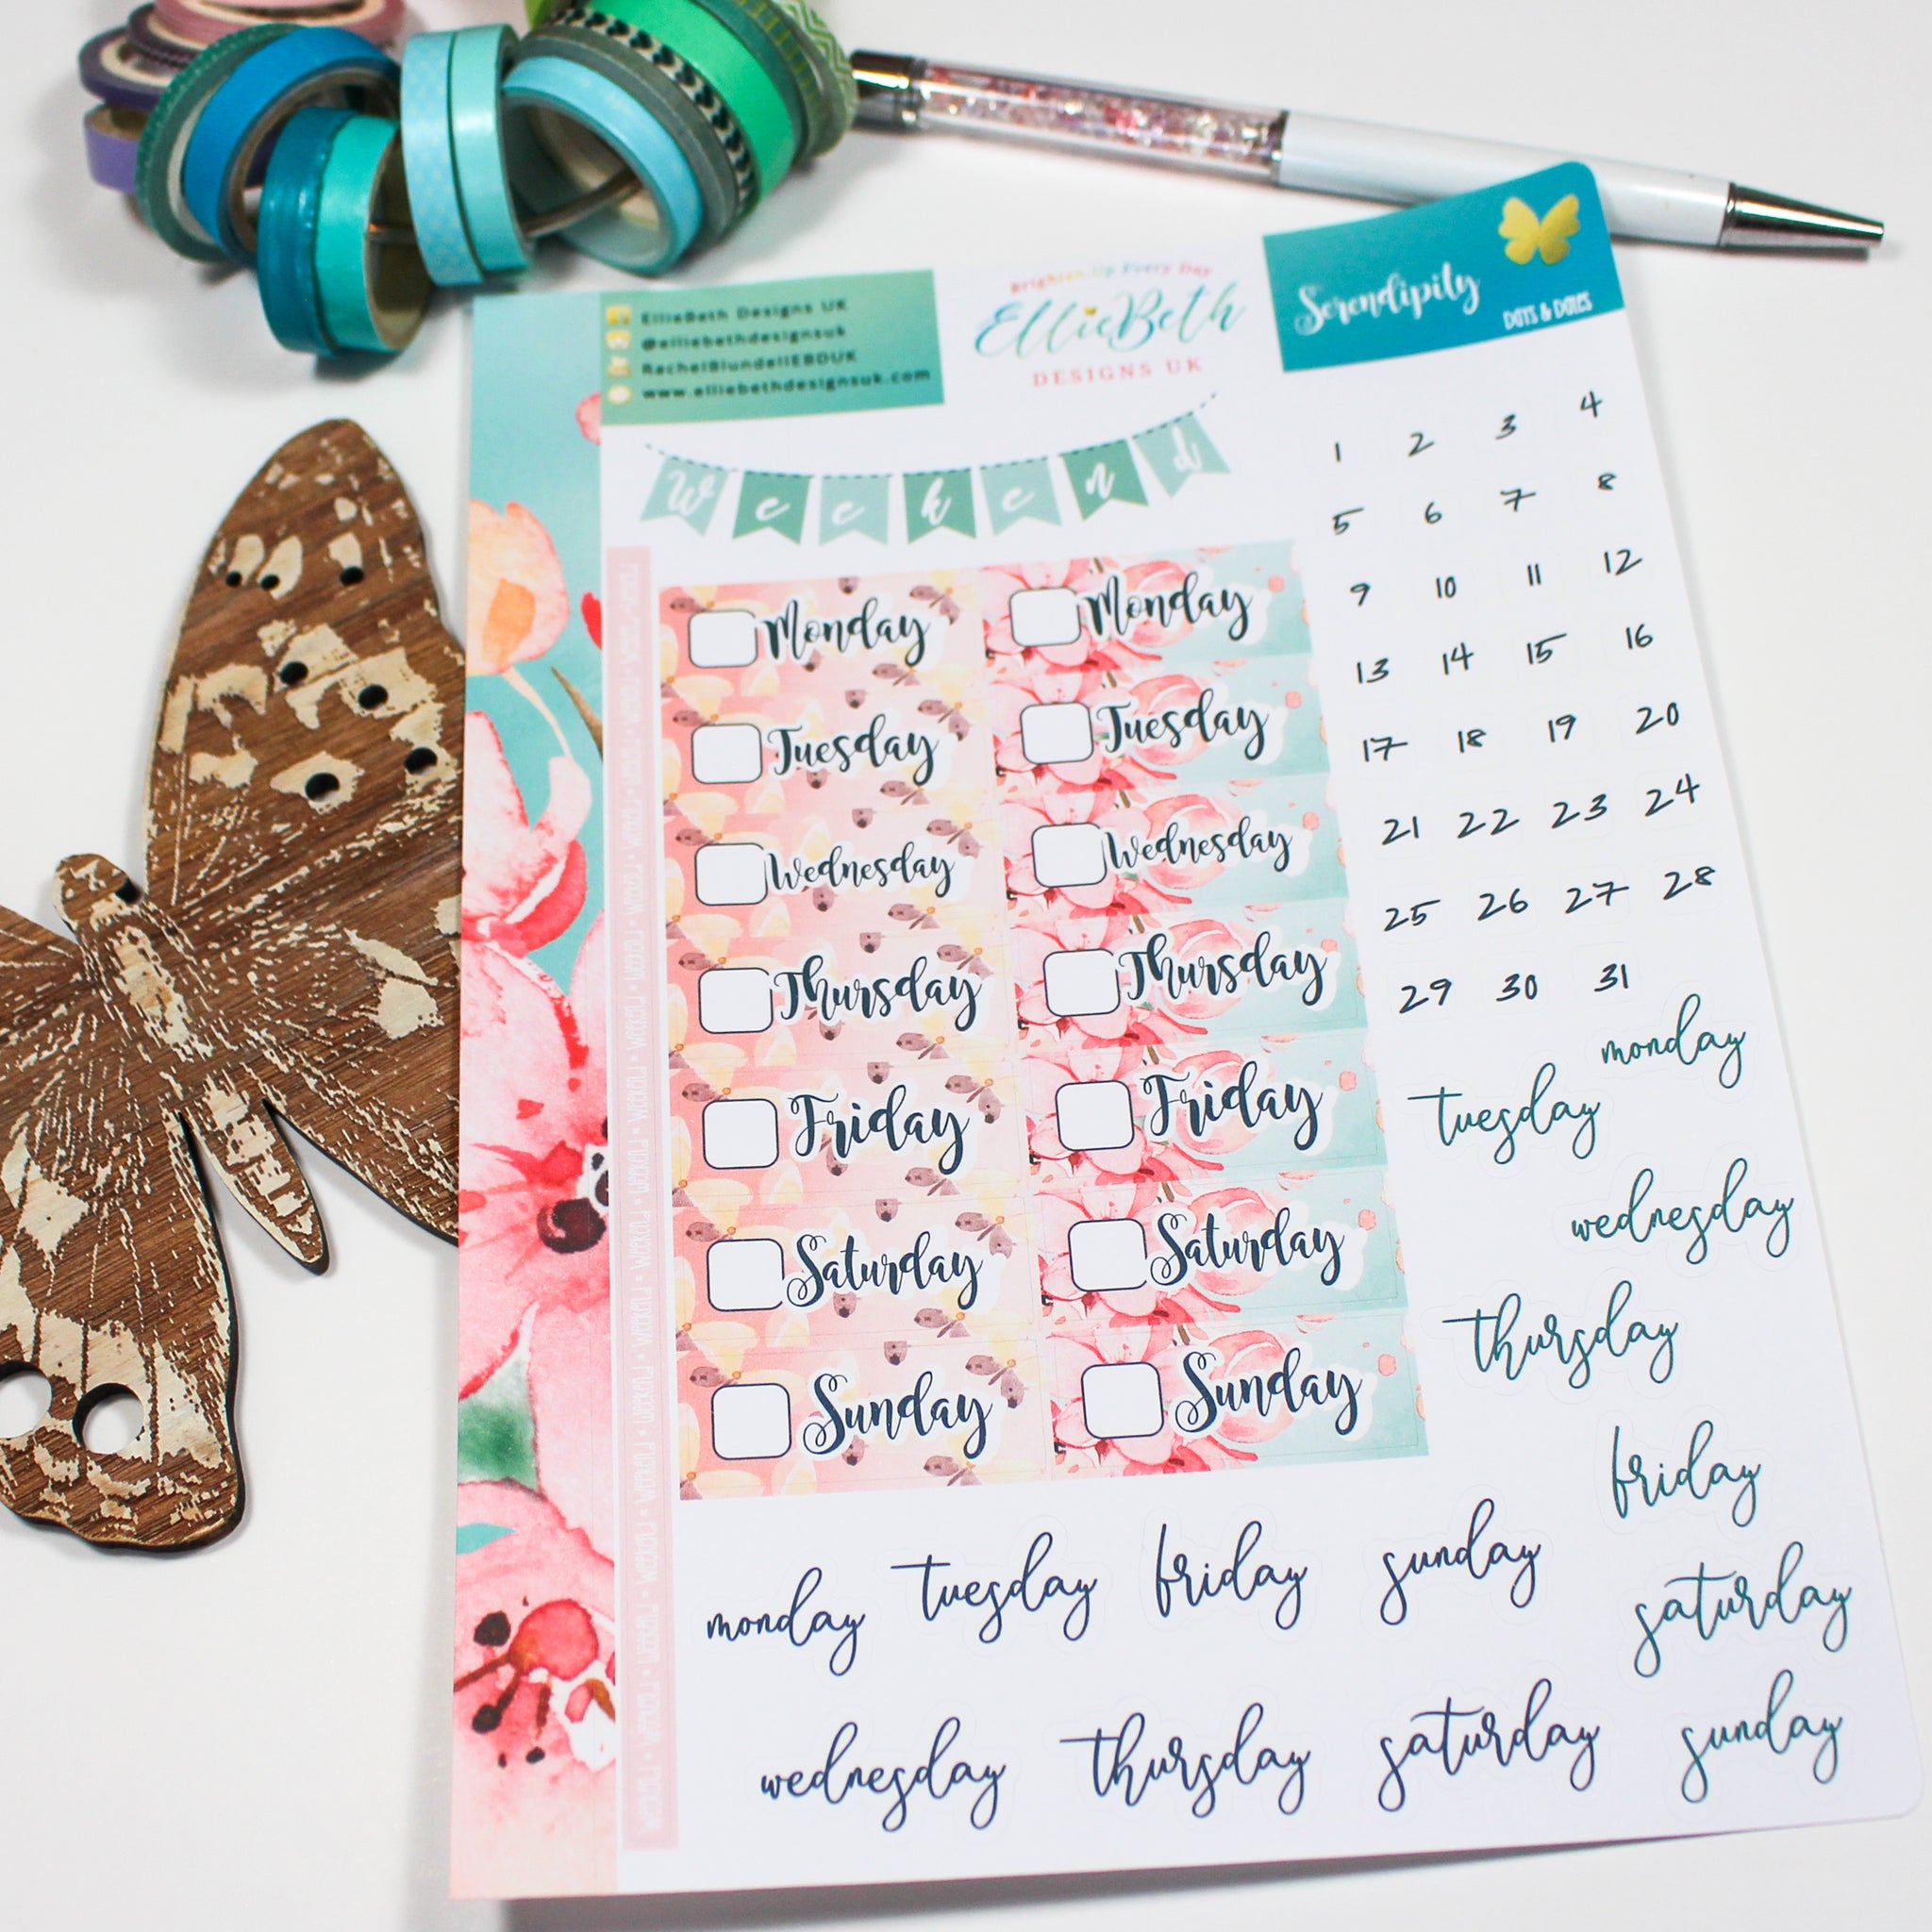 'Serendipity' - Days and Dates - A5 binder ready planner stickers